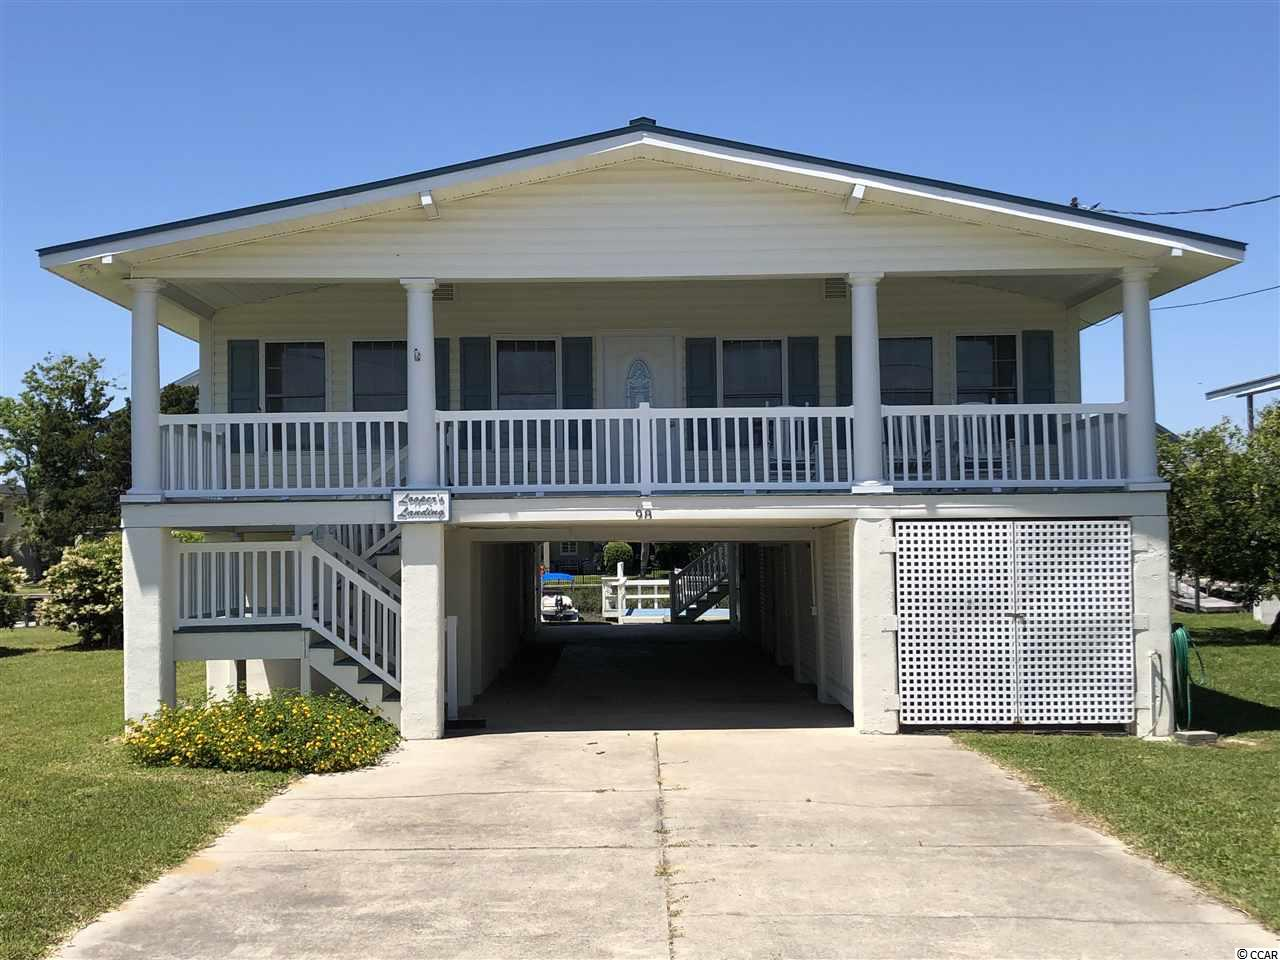 98 Sundial Dr., Pawleys Island, South Carolina